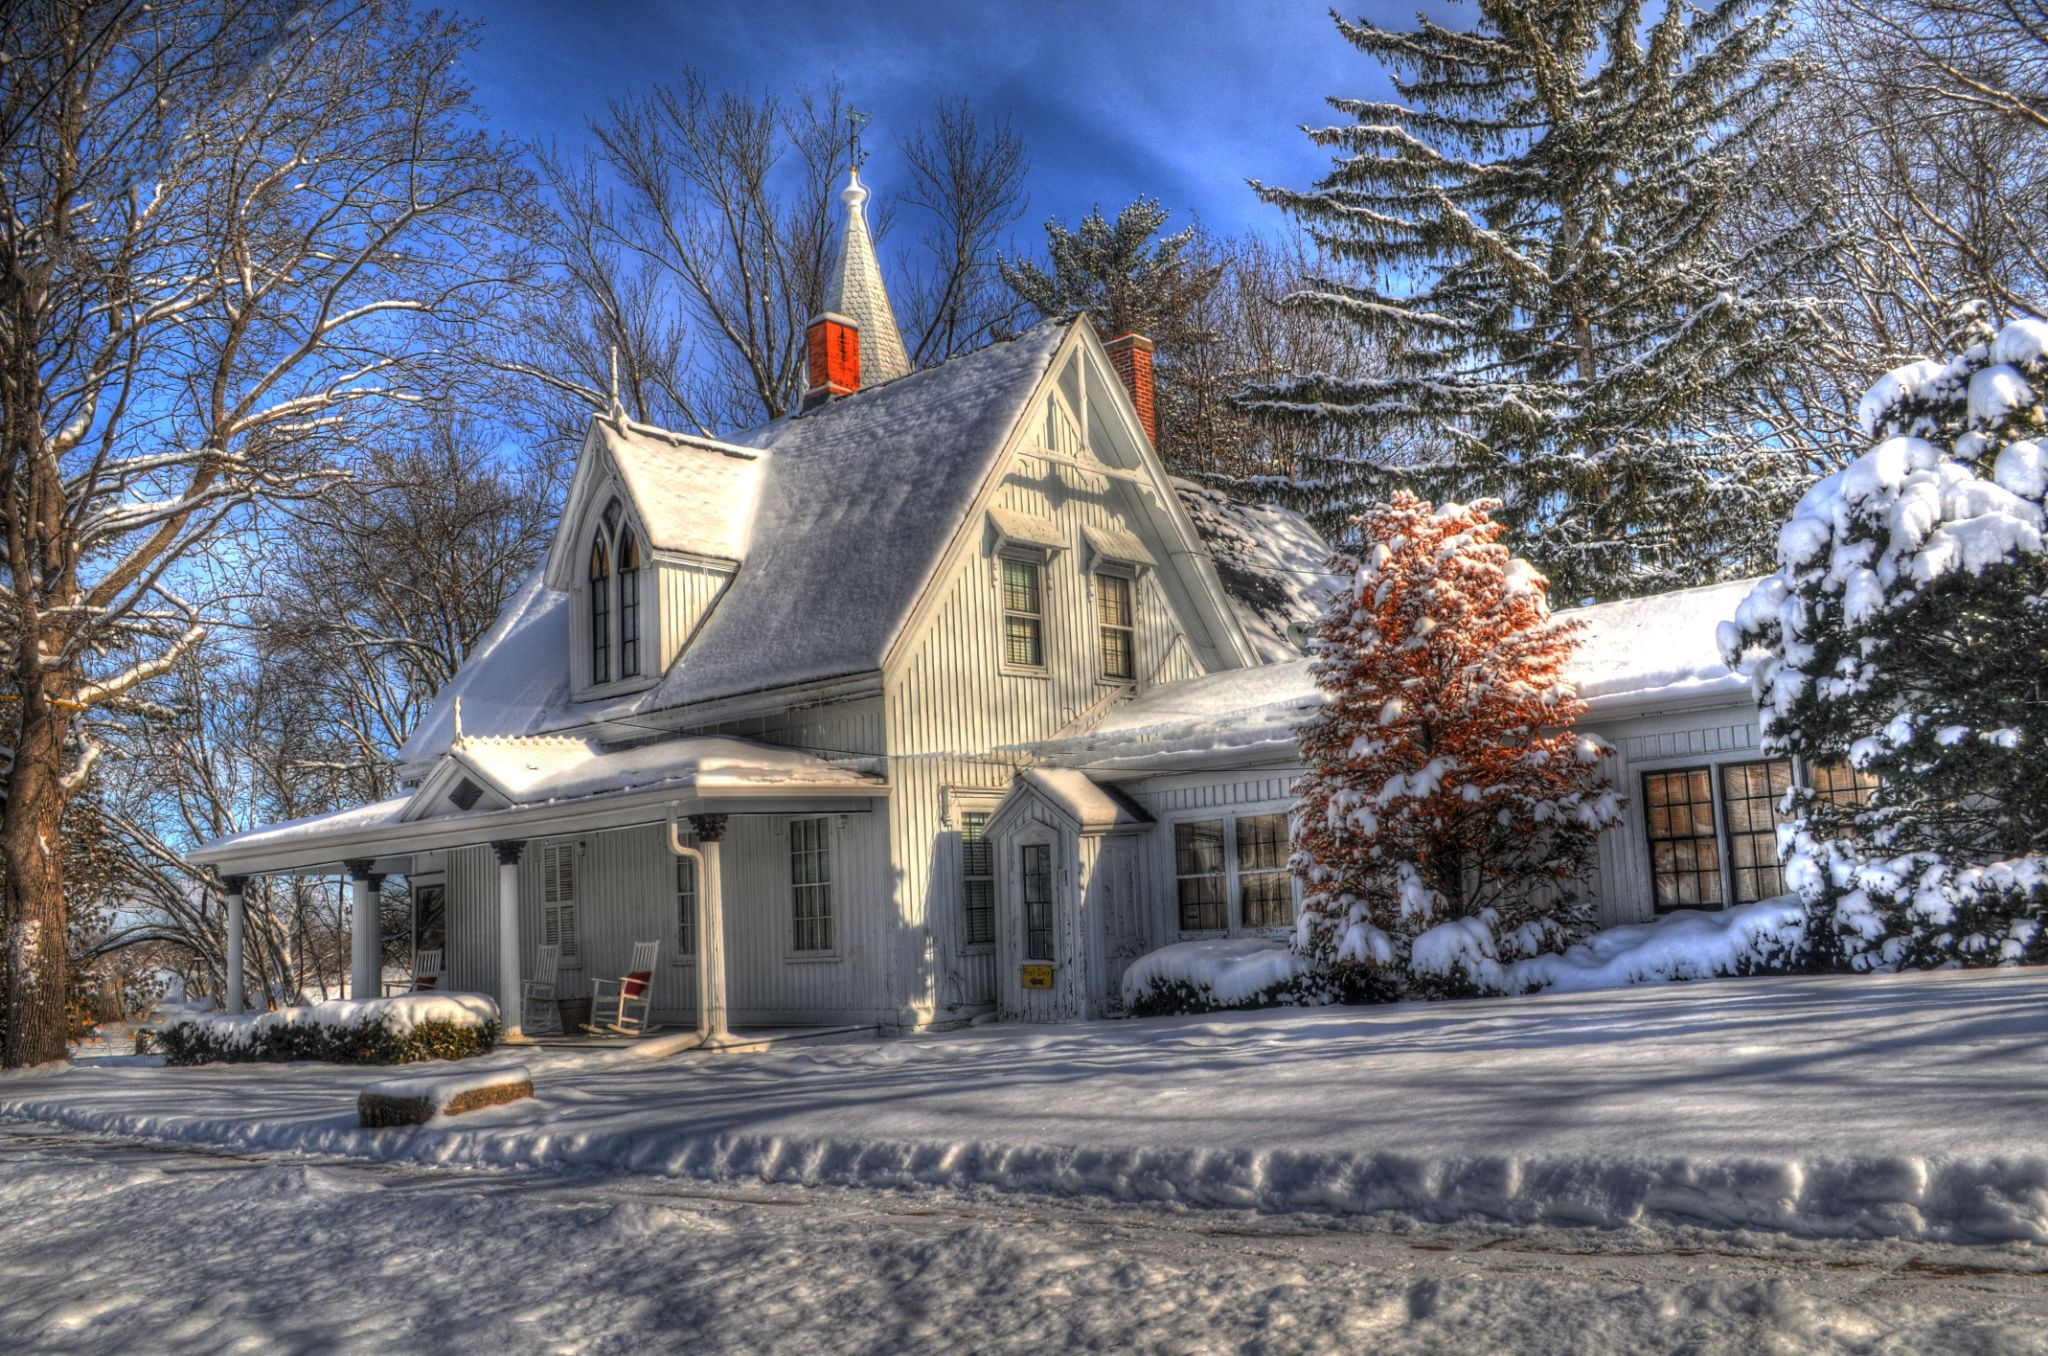 North Country Home by J. Philip Larson Photography